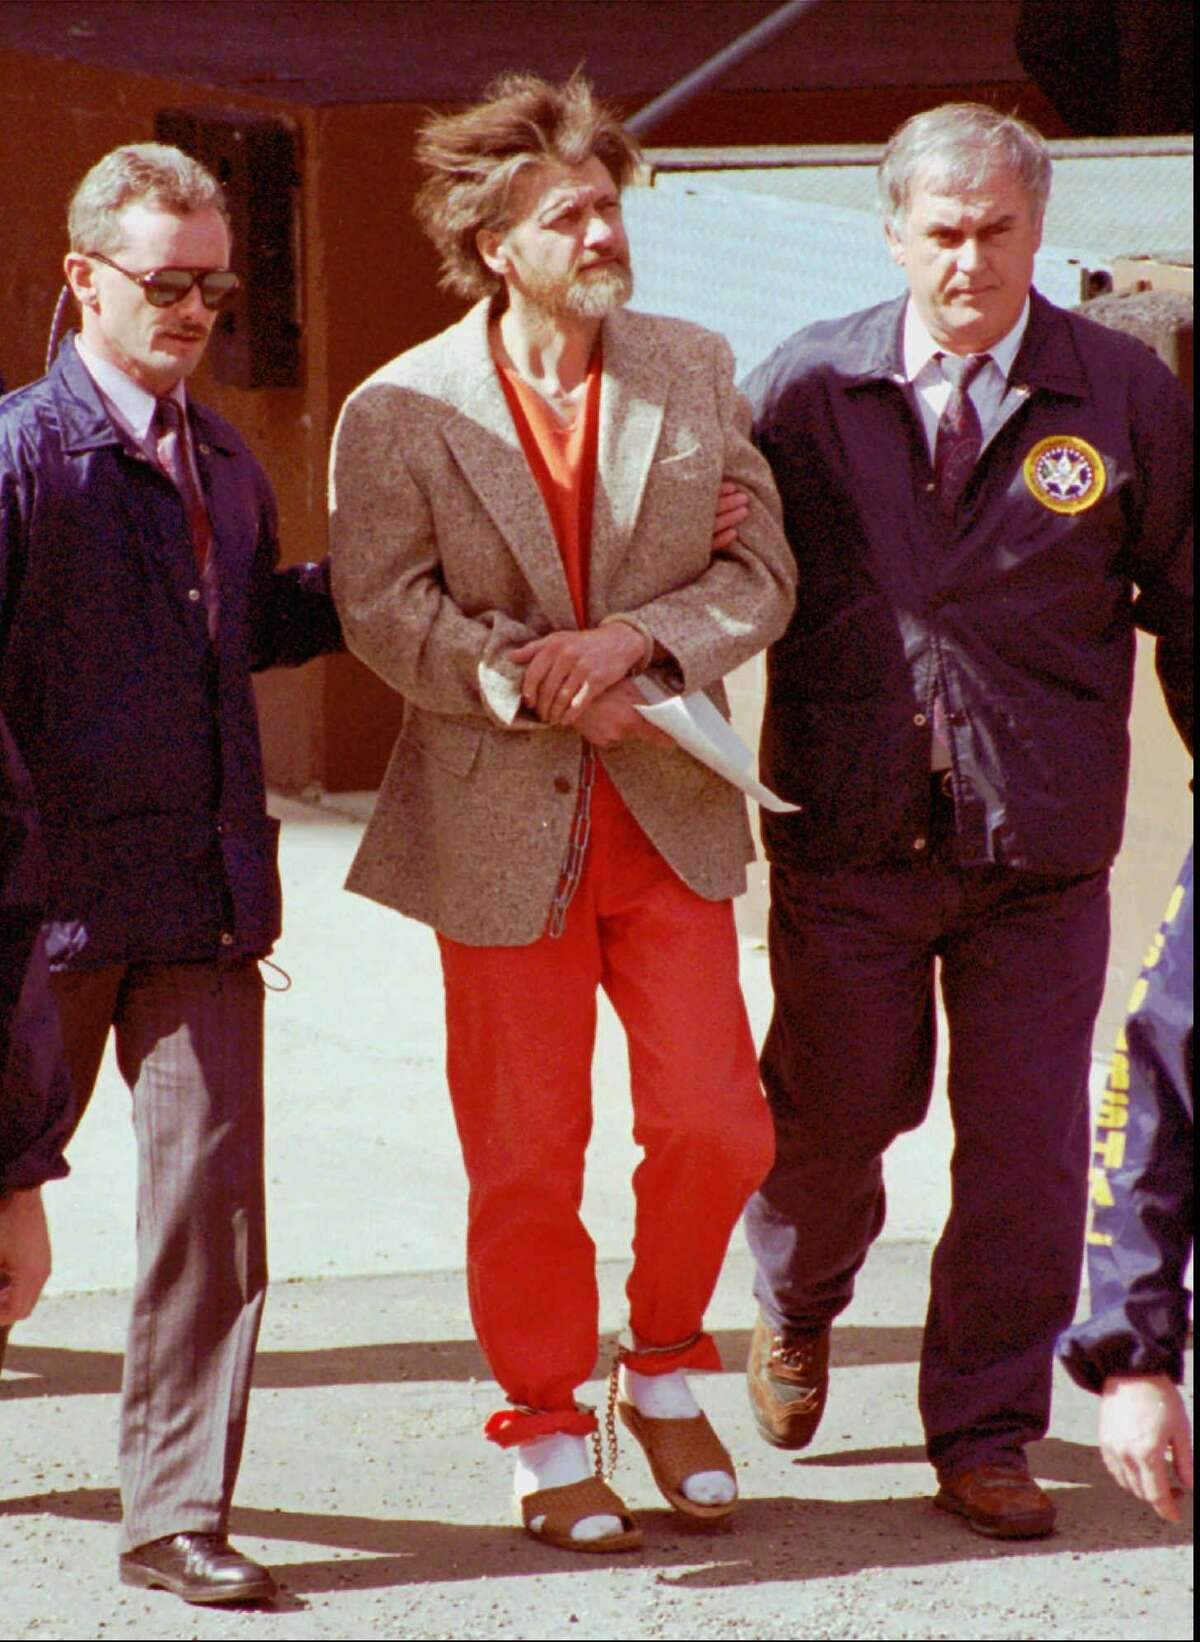 Federal agents escort Unabomber suspect Theodore Kaczynski as they leave the federal courthouse in Helena, Mont., on April 4, 1996. Kaczynski has agreed to plead guilty in return for a sentence of life in prison without parole, a federal official said Thursday, Jan. 22, 1998. (AP Photo/John Youngbear)